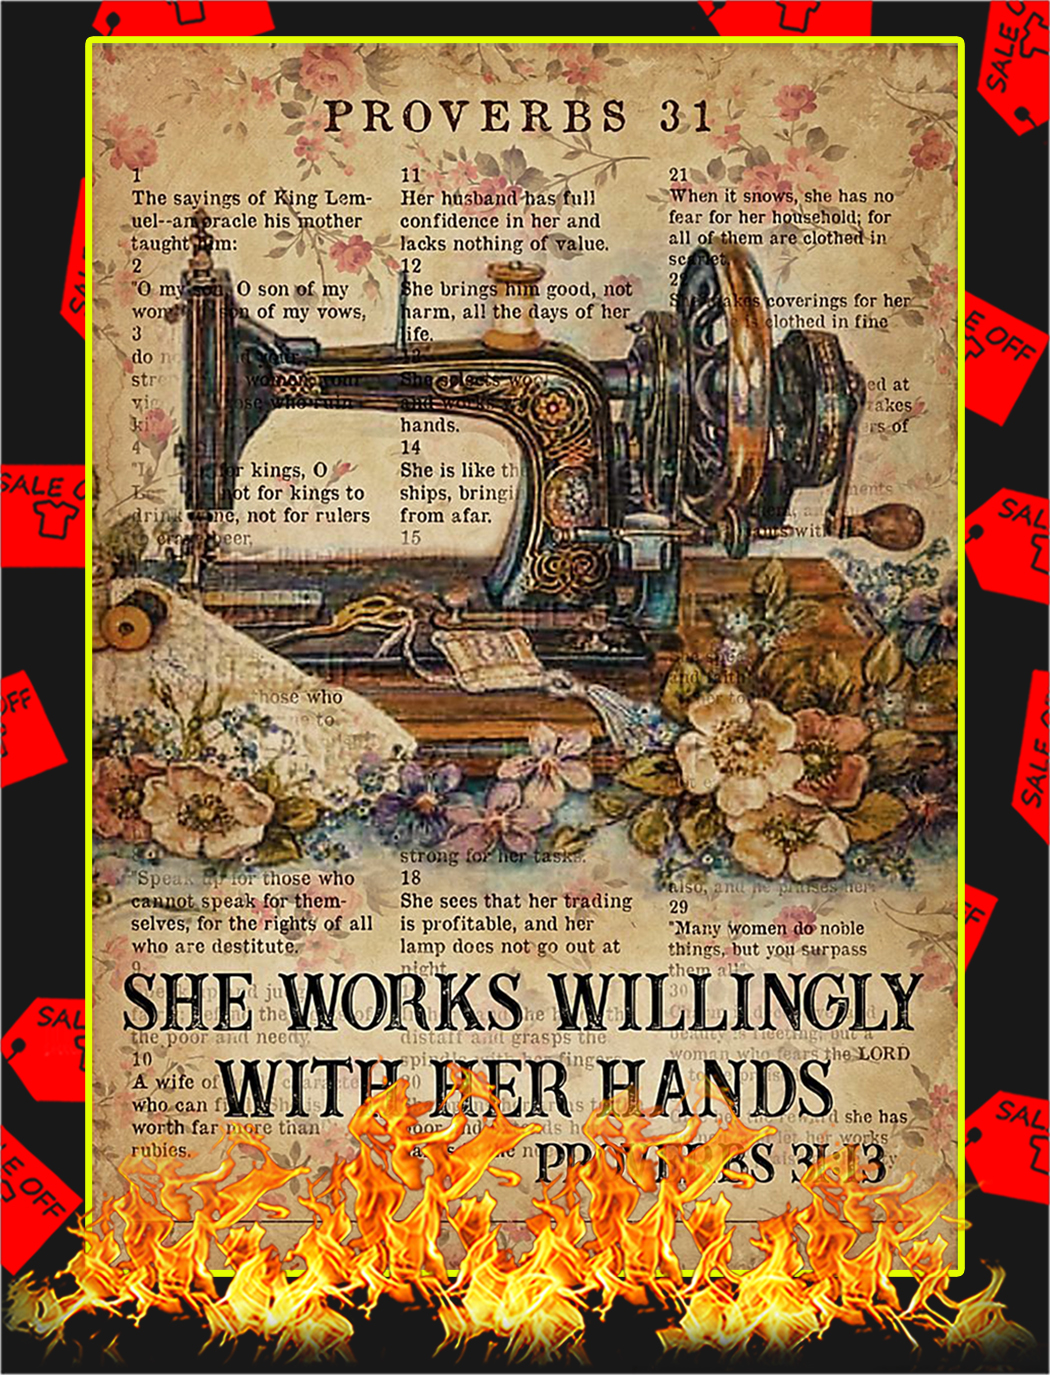 Sewing Proverbs 31 she works willingly with her hands poster - A3